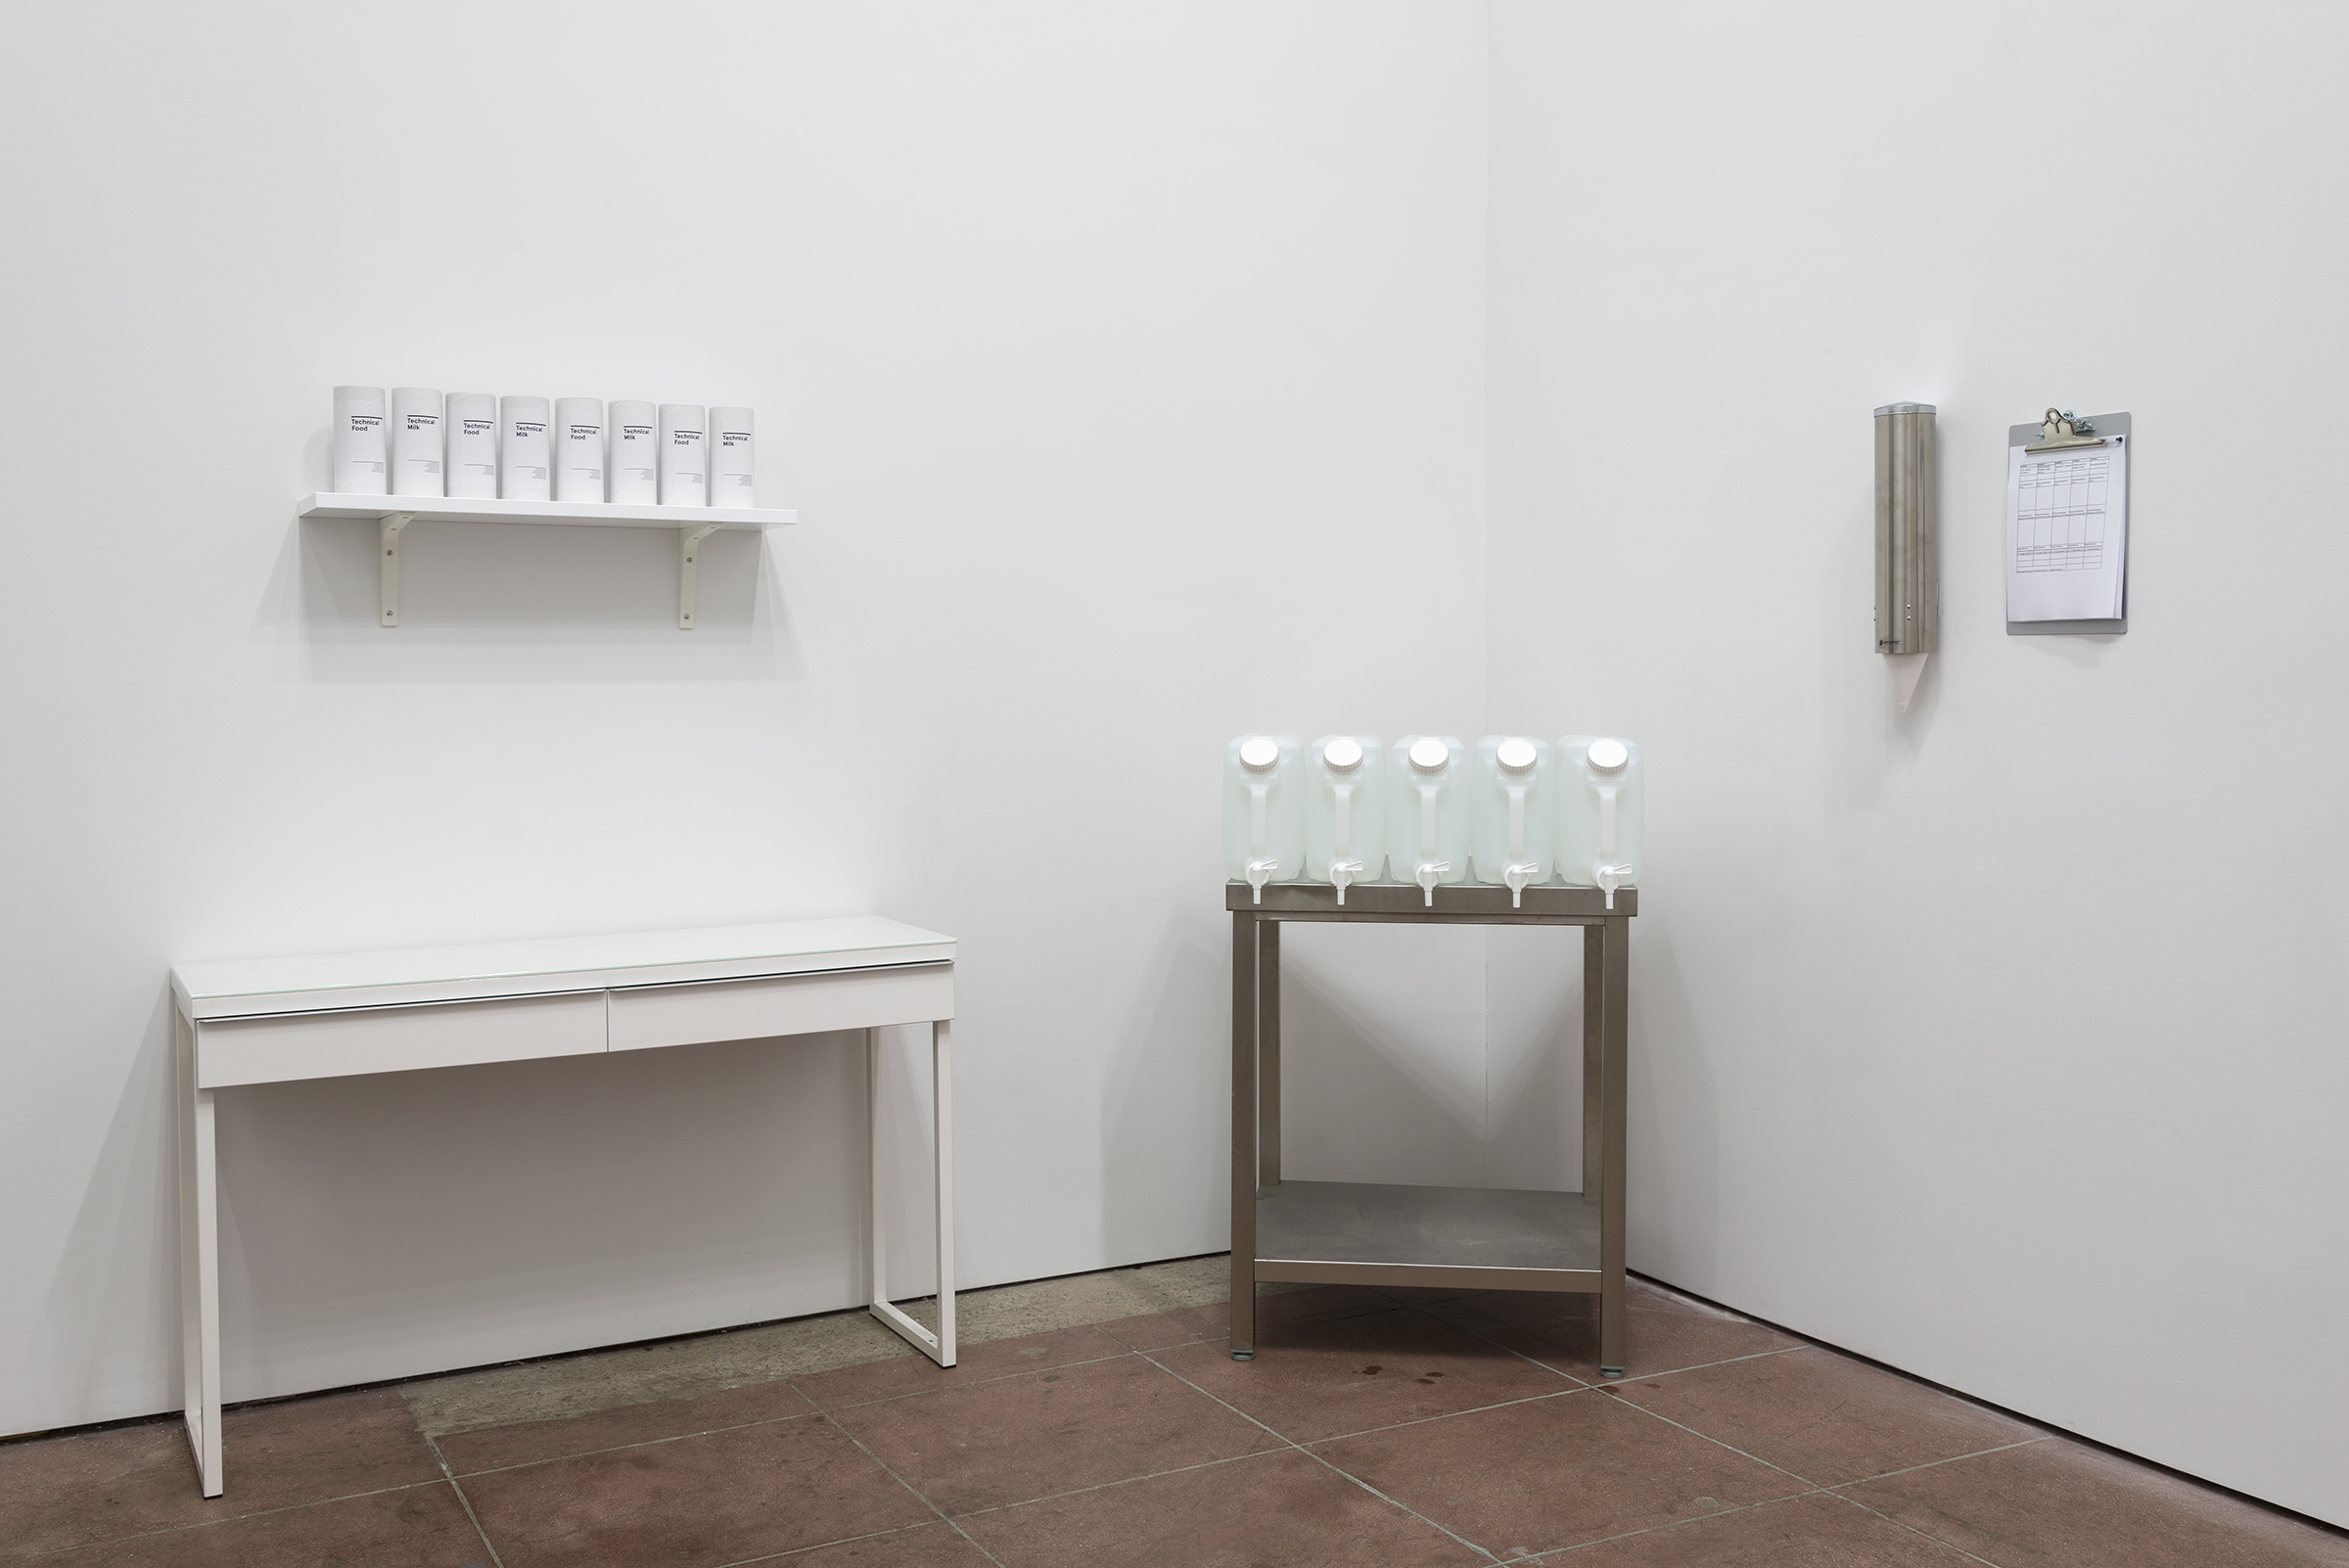 Installation view, In the Flesh Part l: Subliminal Substances , Martos Gallery, Los Angeles, 2015